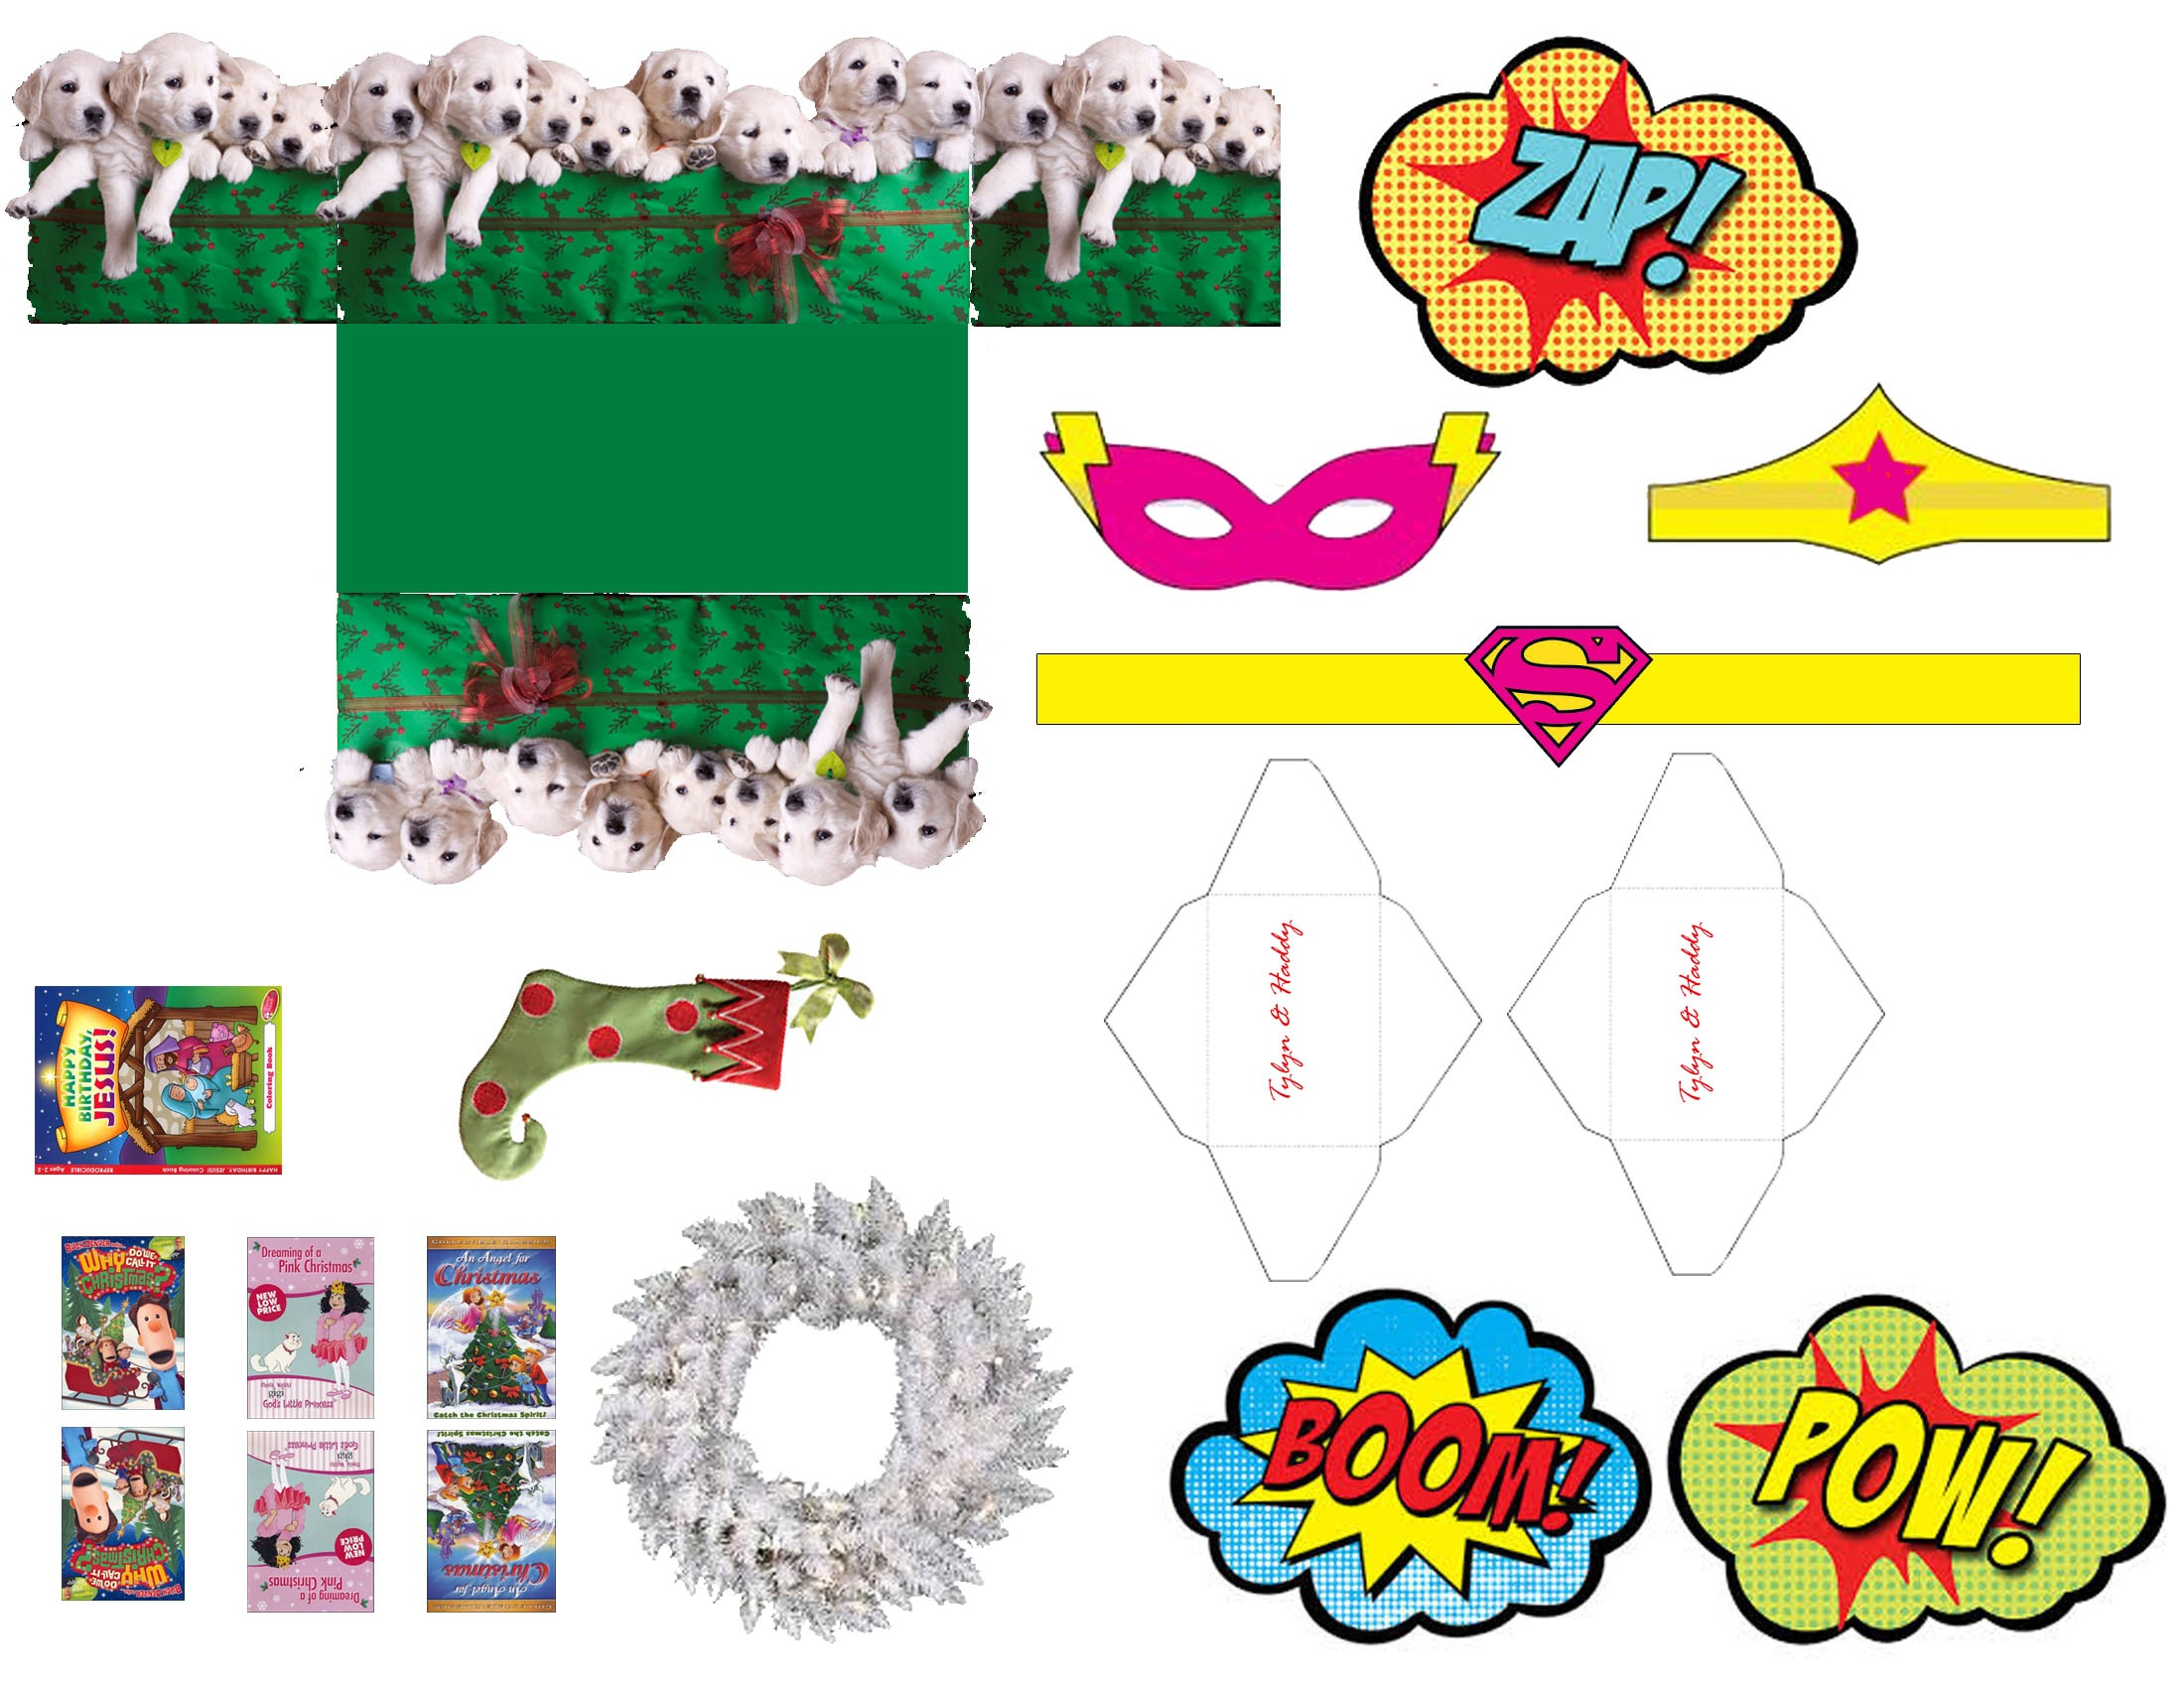 Elf On The Shelf Free Printable Props – The Glamorous Project - Elf On The Shelf Free Printable Props